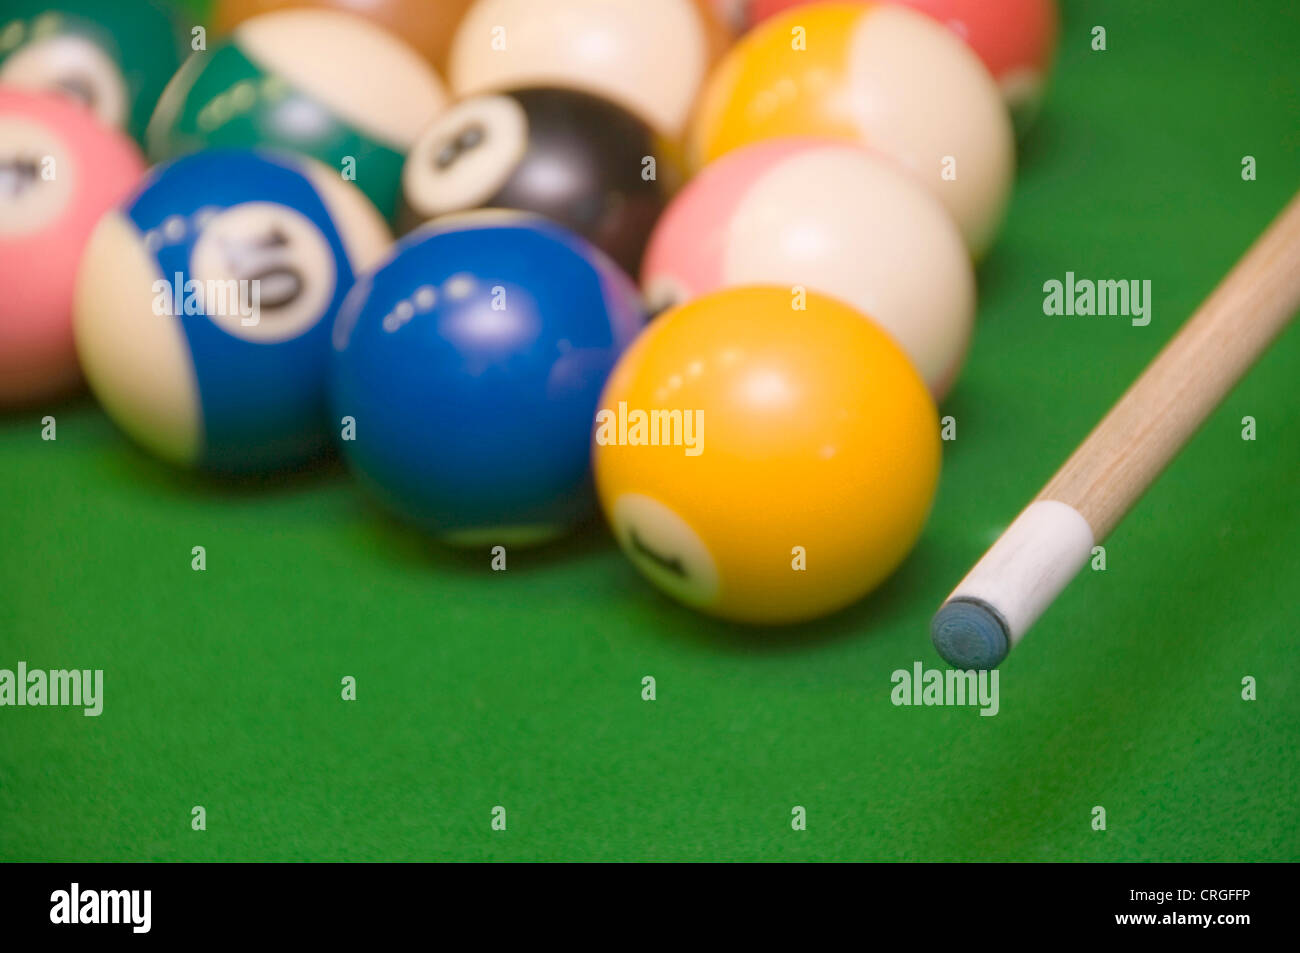 billiard balls and billiard cue - Stock Image